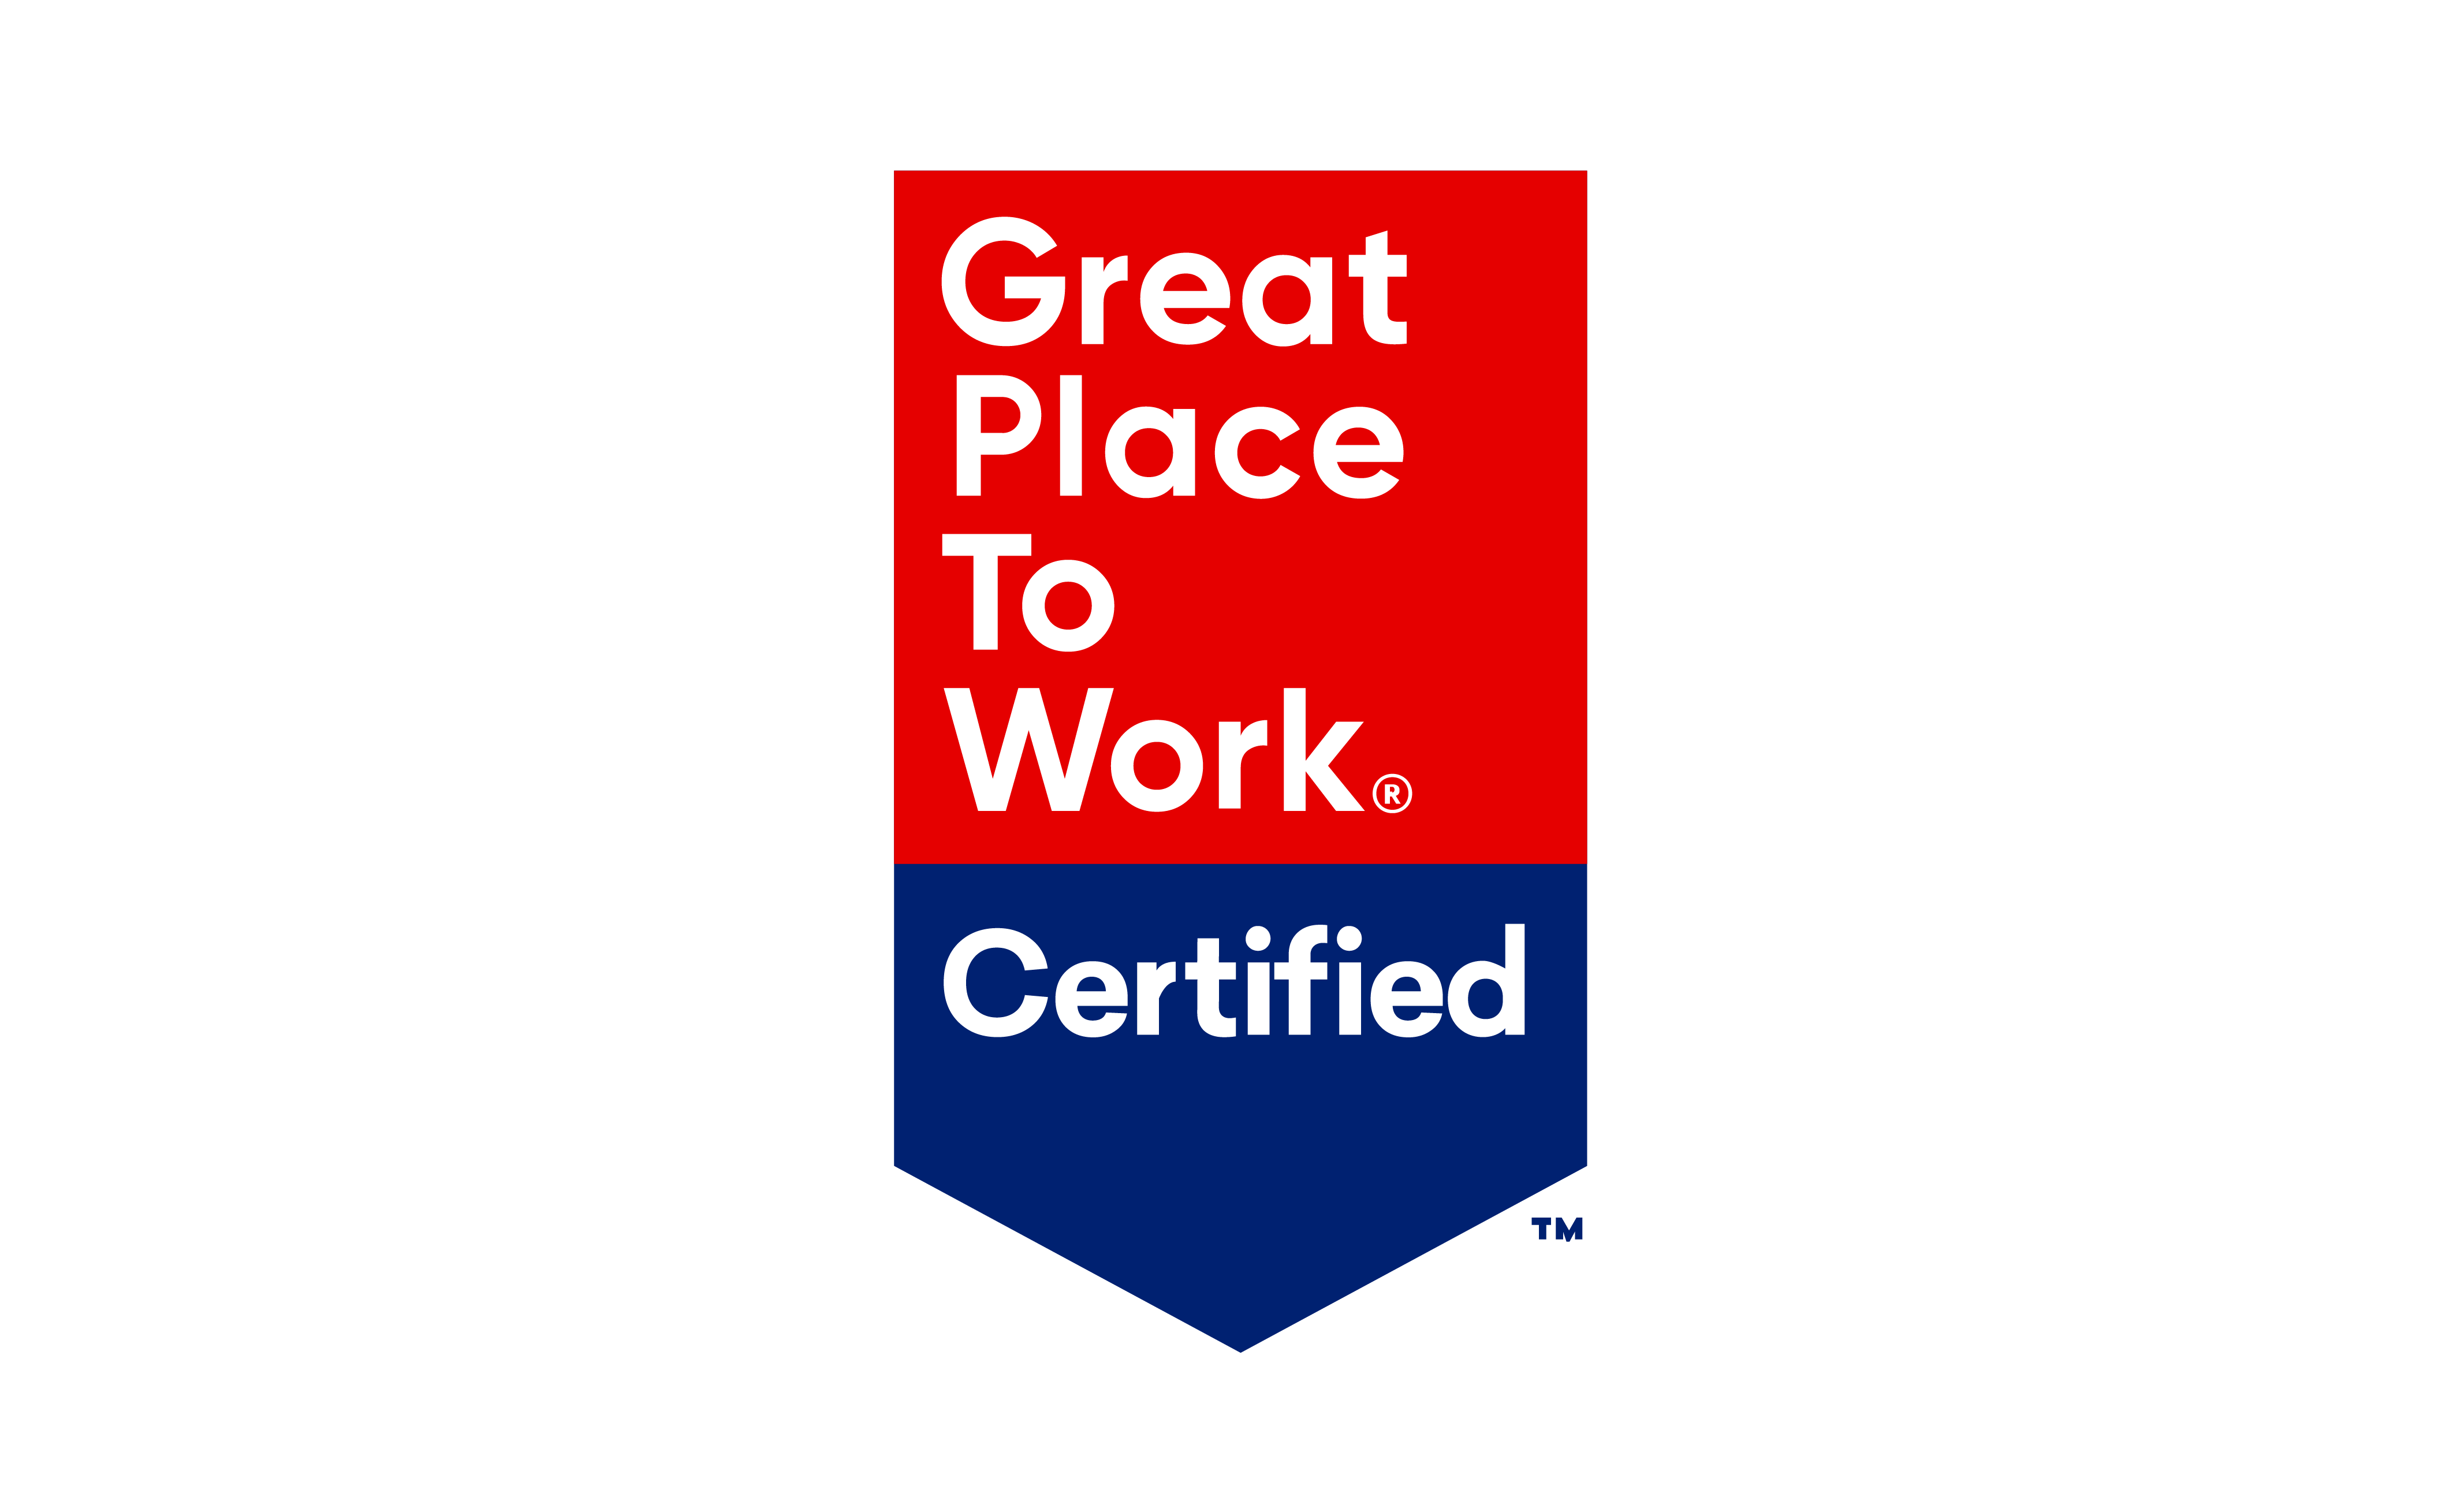 Blackthorn.io is a Certified Great Place to Work!